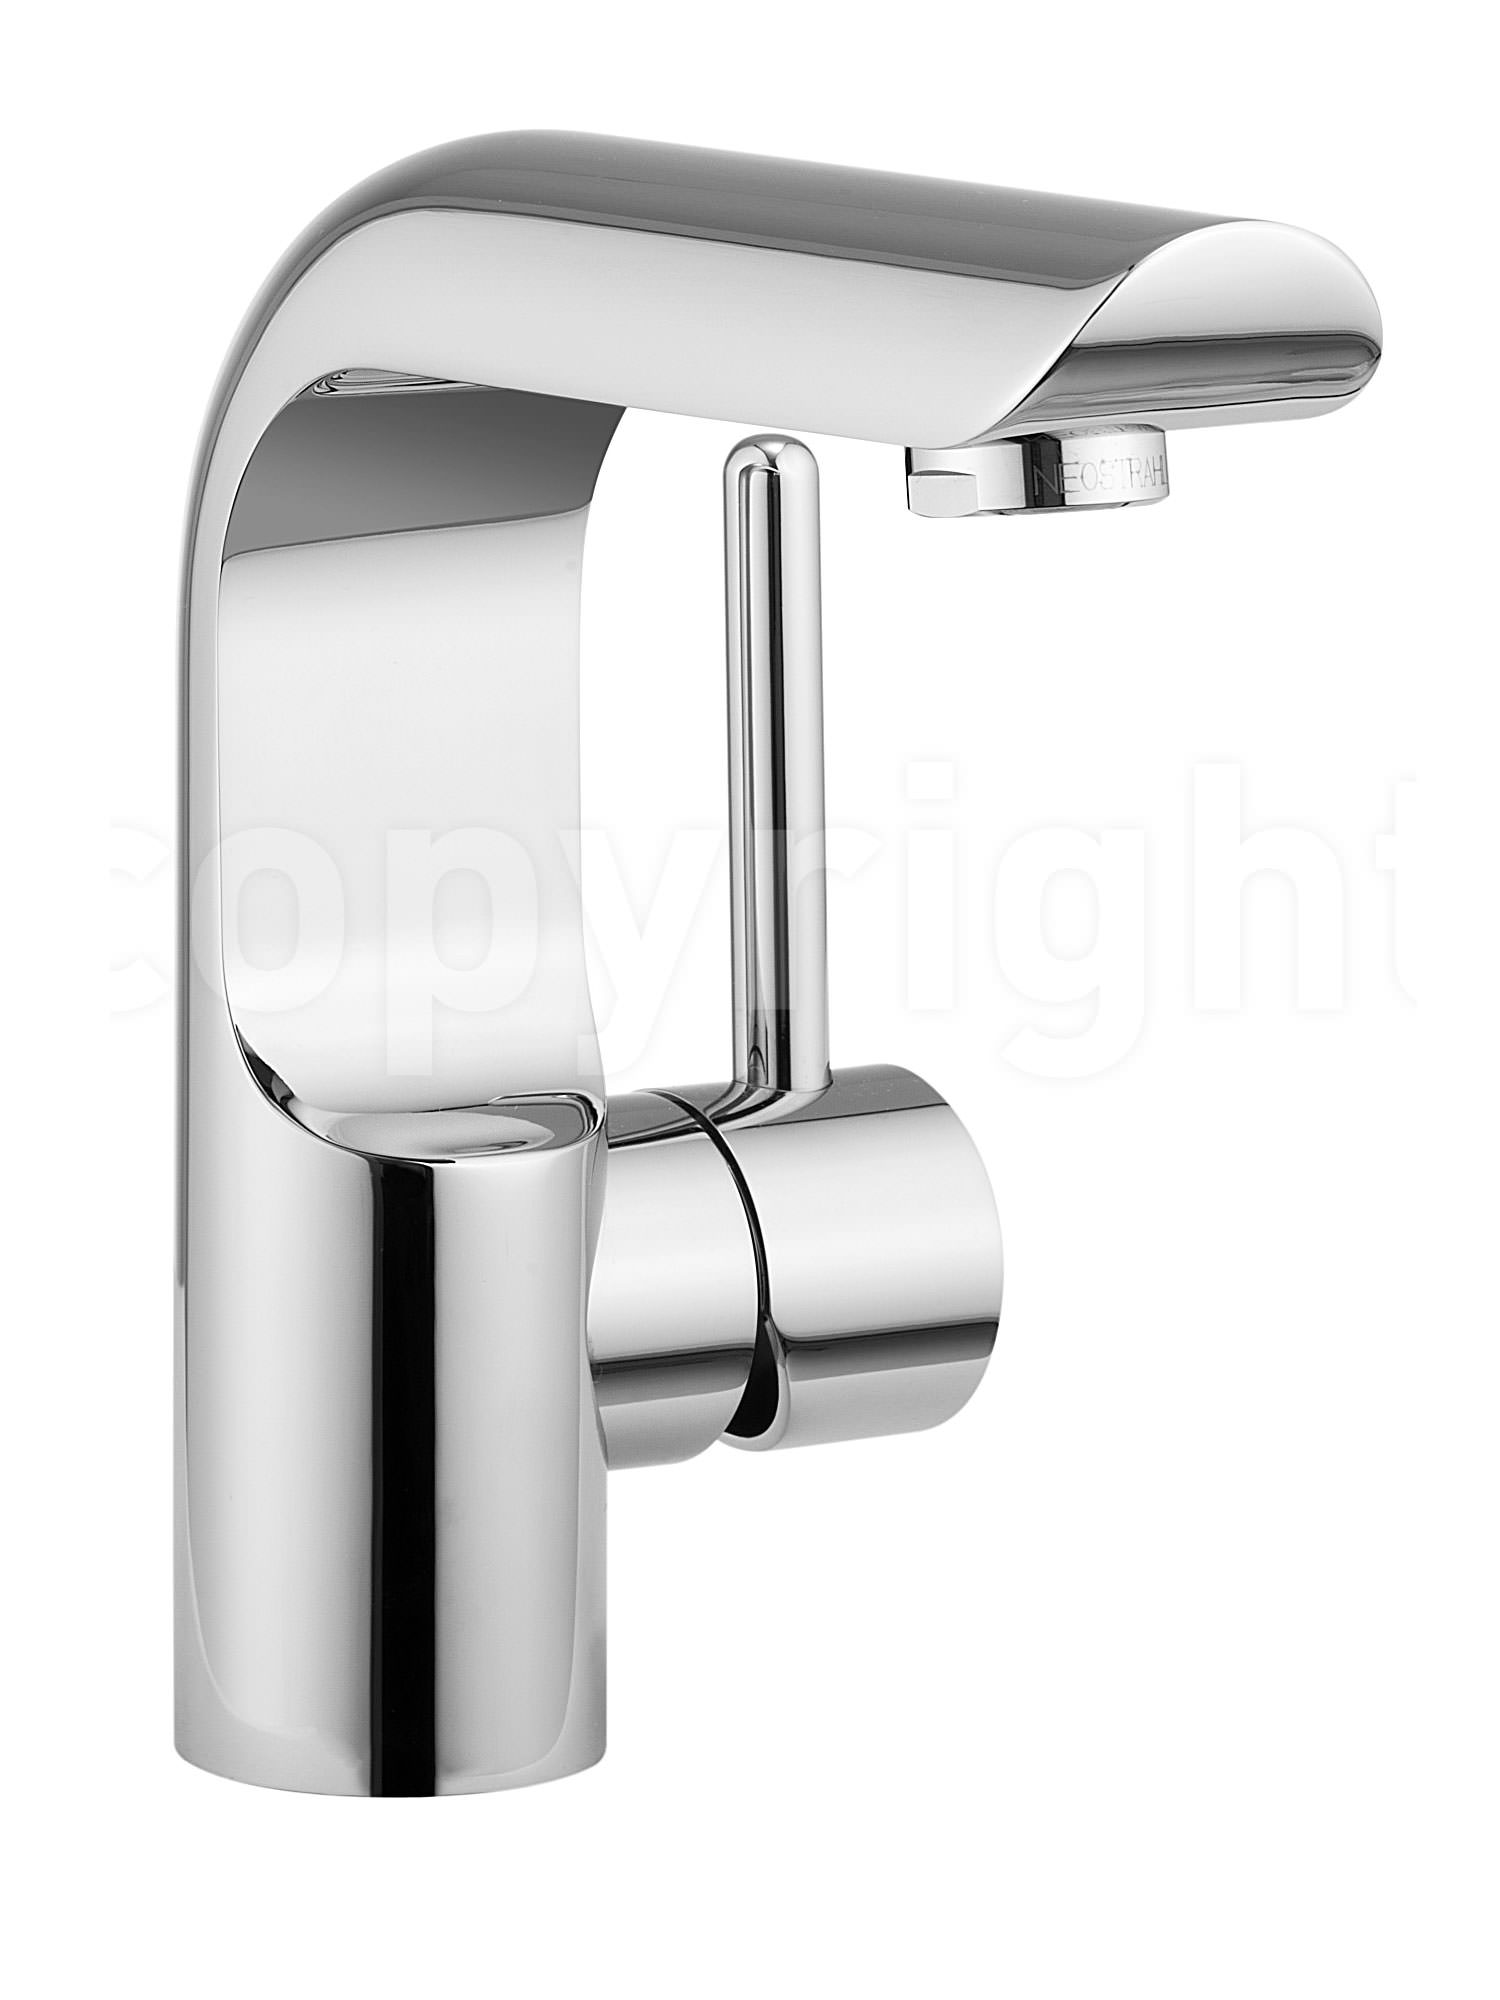 Crosswater Elite Monobloc Basin Mixer Tap Chrome. Curtains For A Living Room. Wooden Showcases For Living Room. Beach Chic Living Room Ideas. How To Lay Out Living Room Furniture. Retro Living Rooms. Great Living Room. Luxury Living Room Interior Design. Ikea Room Ideas Living Room